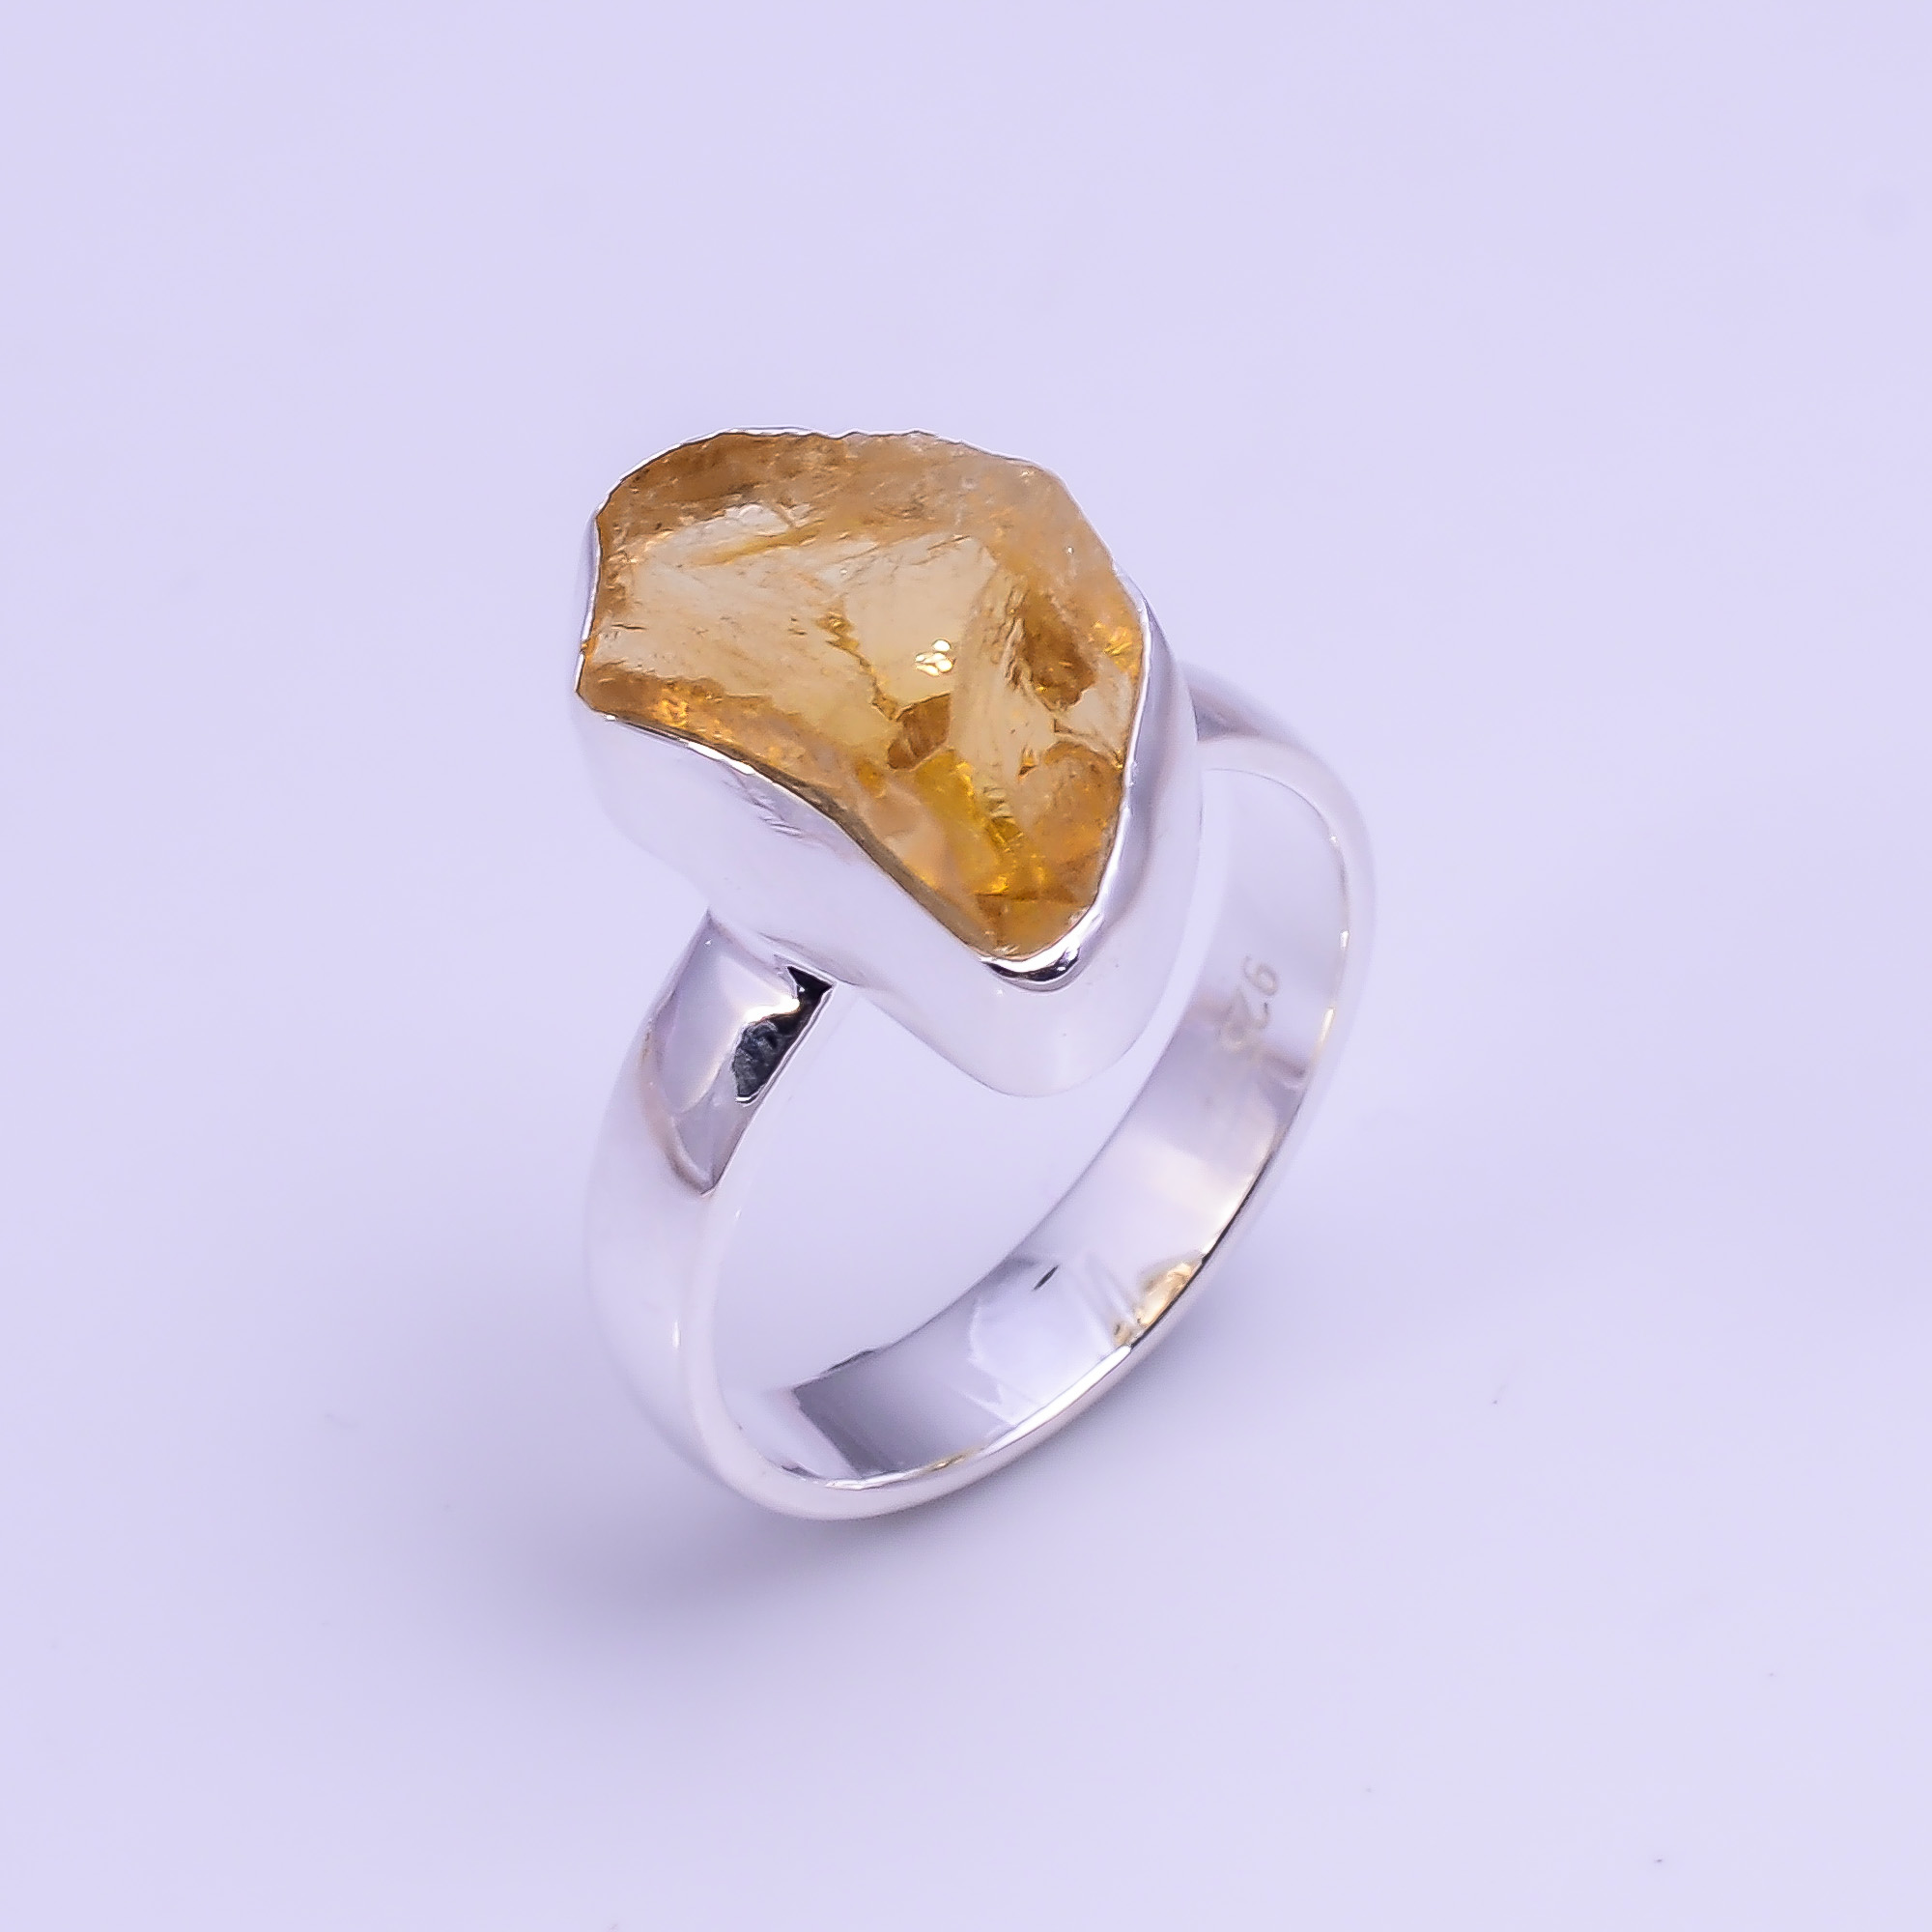 Natural Citrine Raw Gemstone 925 Sterling Silver Ring Size US 6